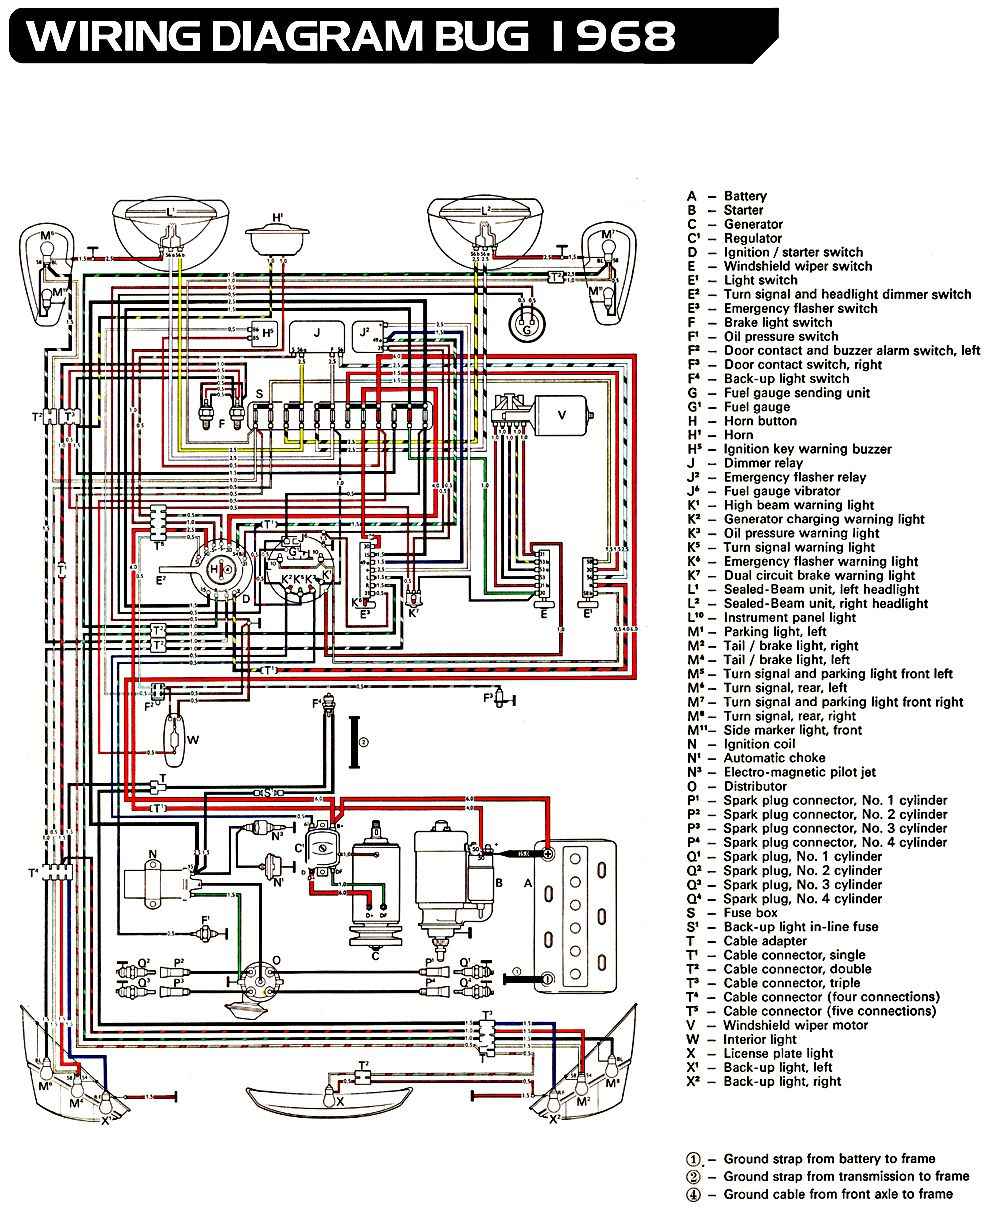 vw bug ignition wiring diagram - 73 vw wiring diagram free ... | volkswagen  new beetle, volkswagen beetle, vw beetles  pinterest